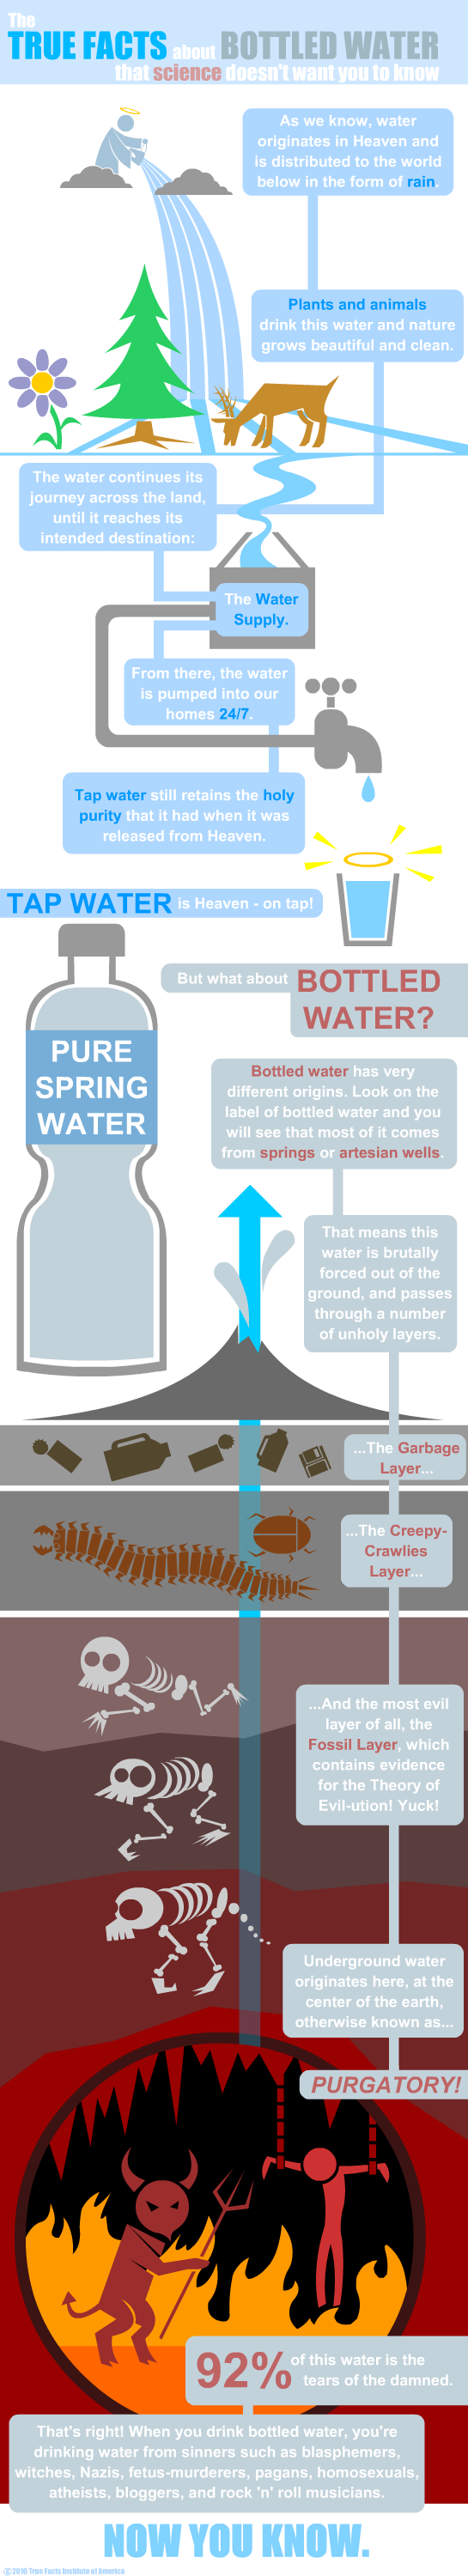 True Facts about Bottled Water